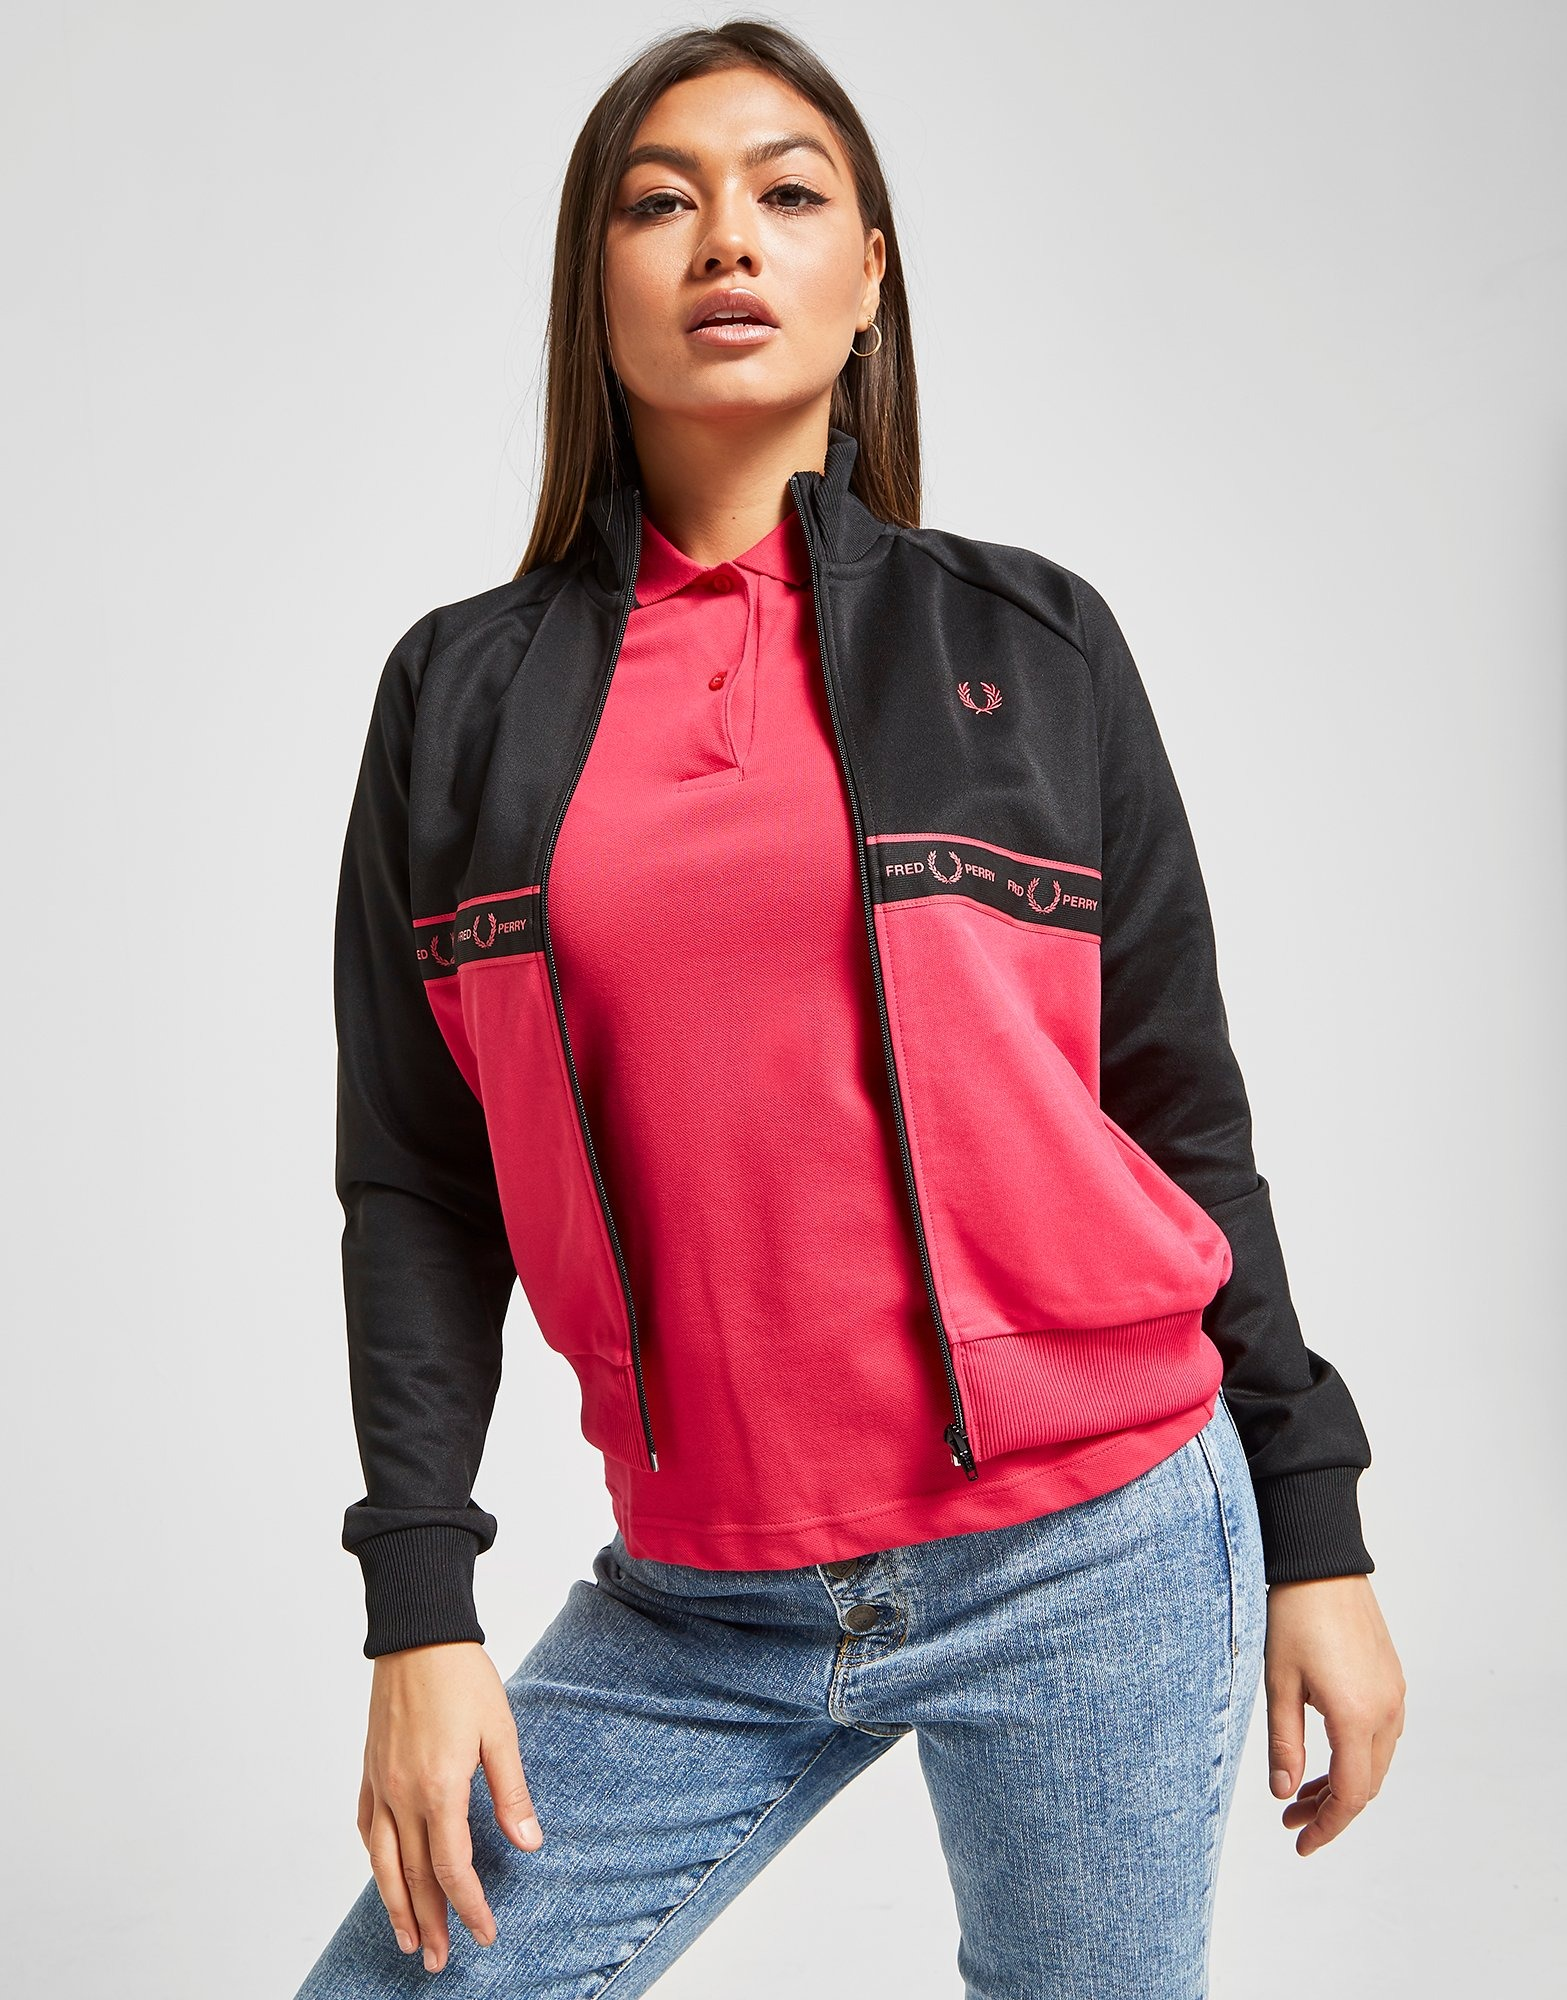 giacca donna fred perry